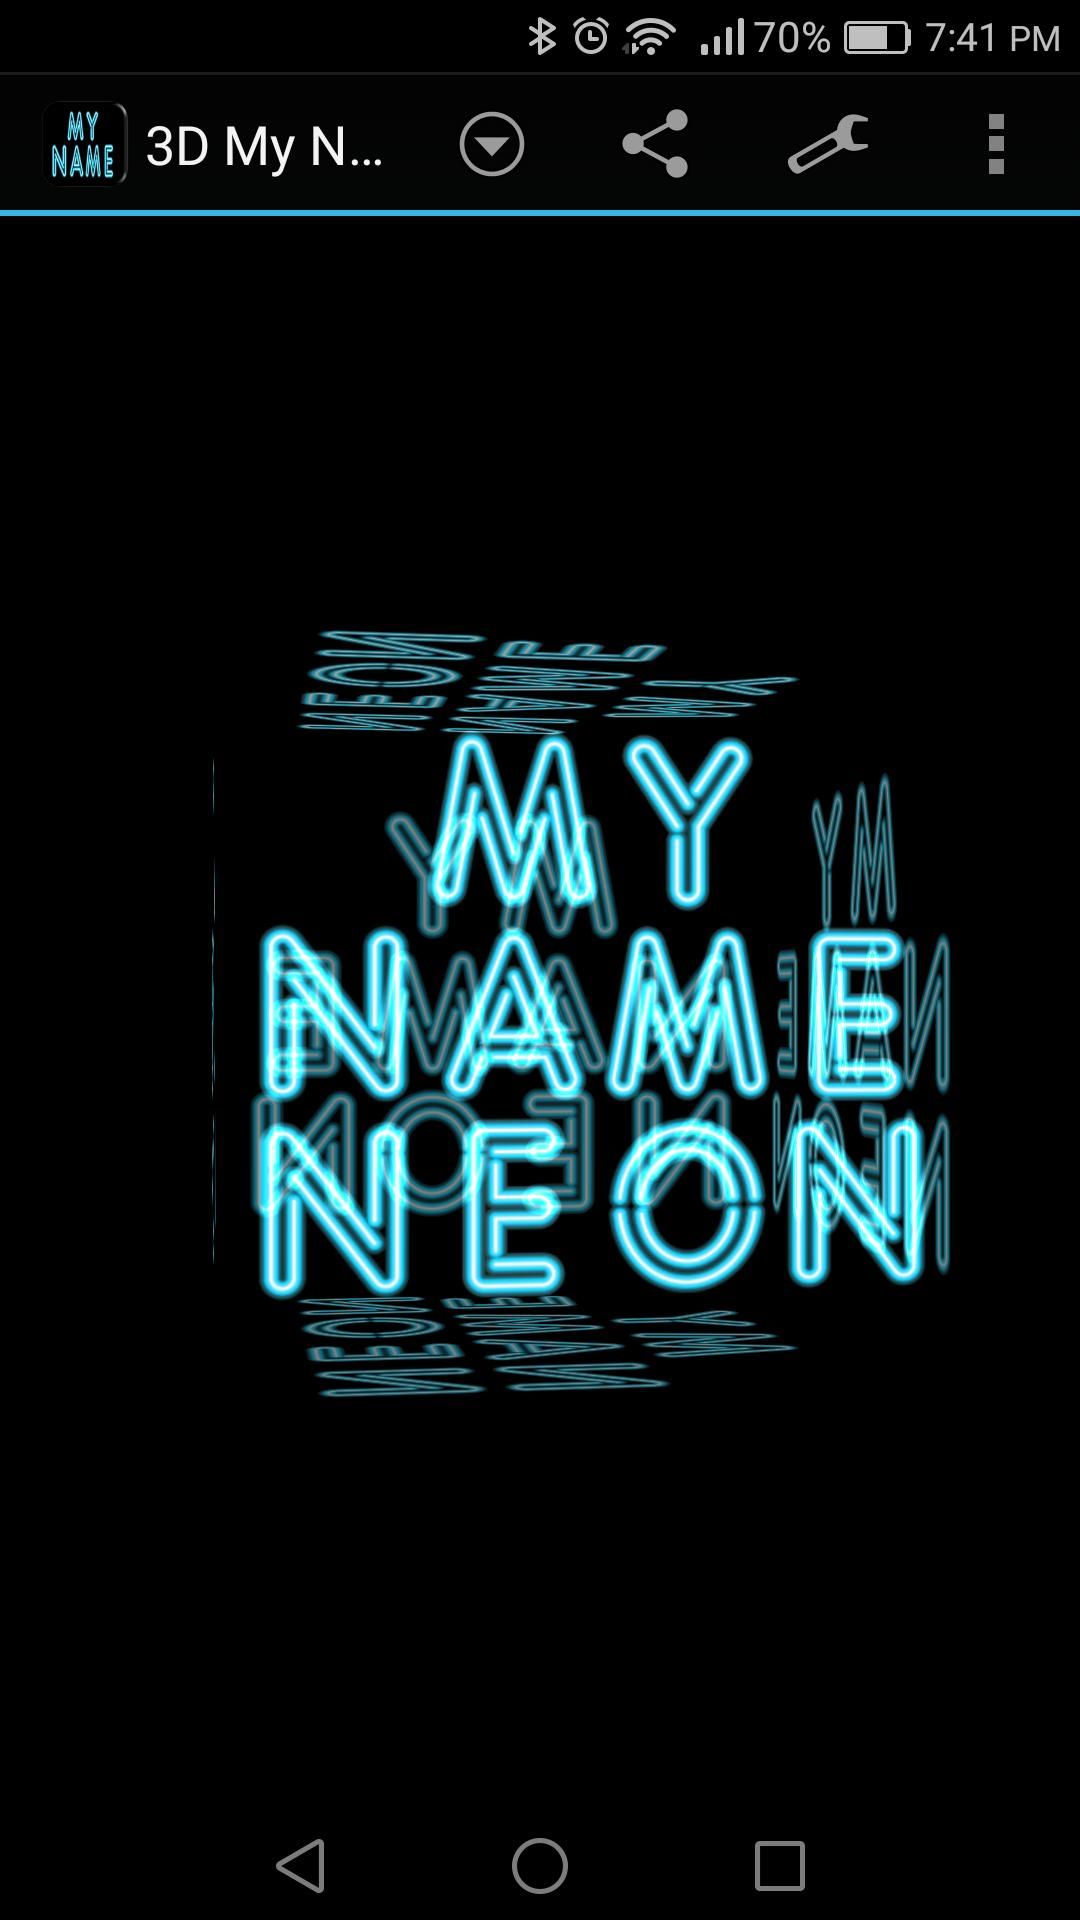 3D My Name Neon Live Wallpaper For Android APK Download